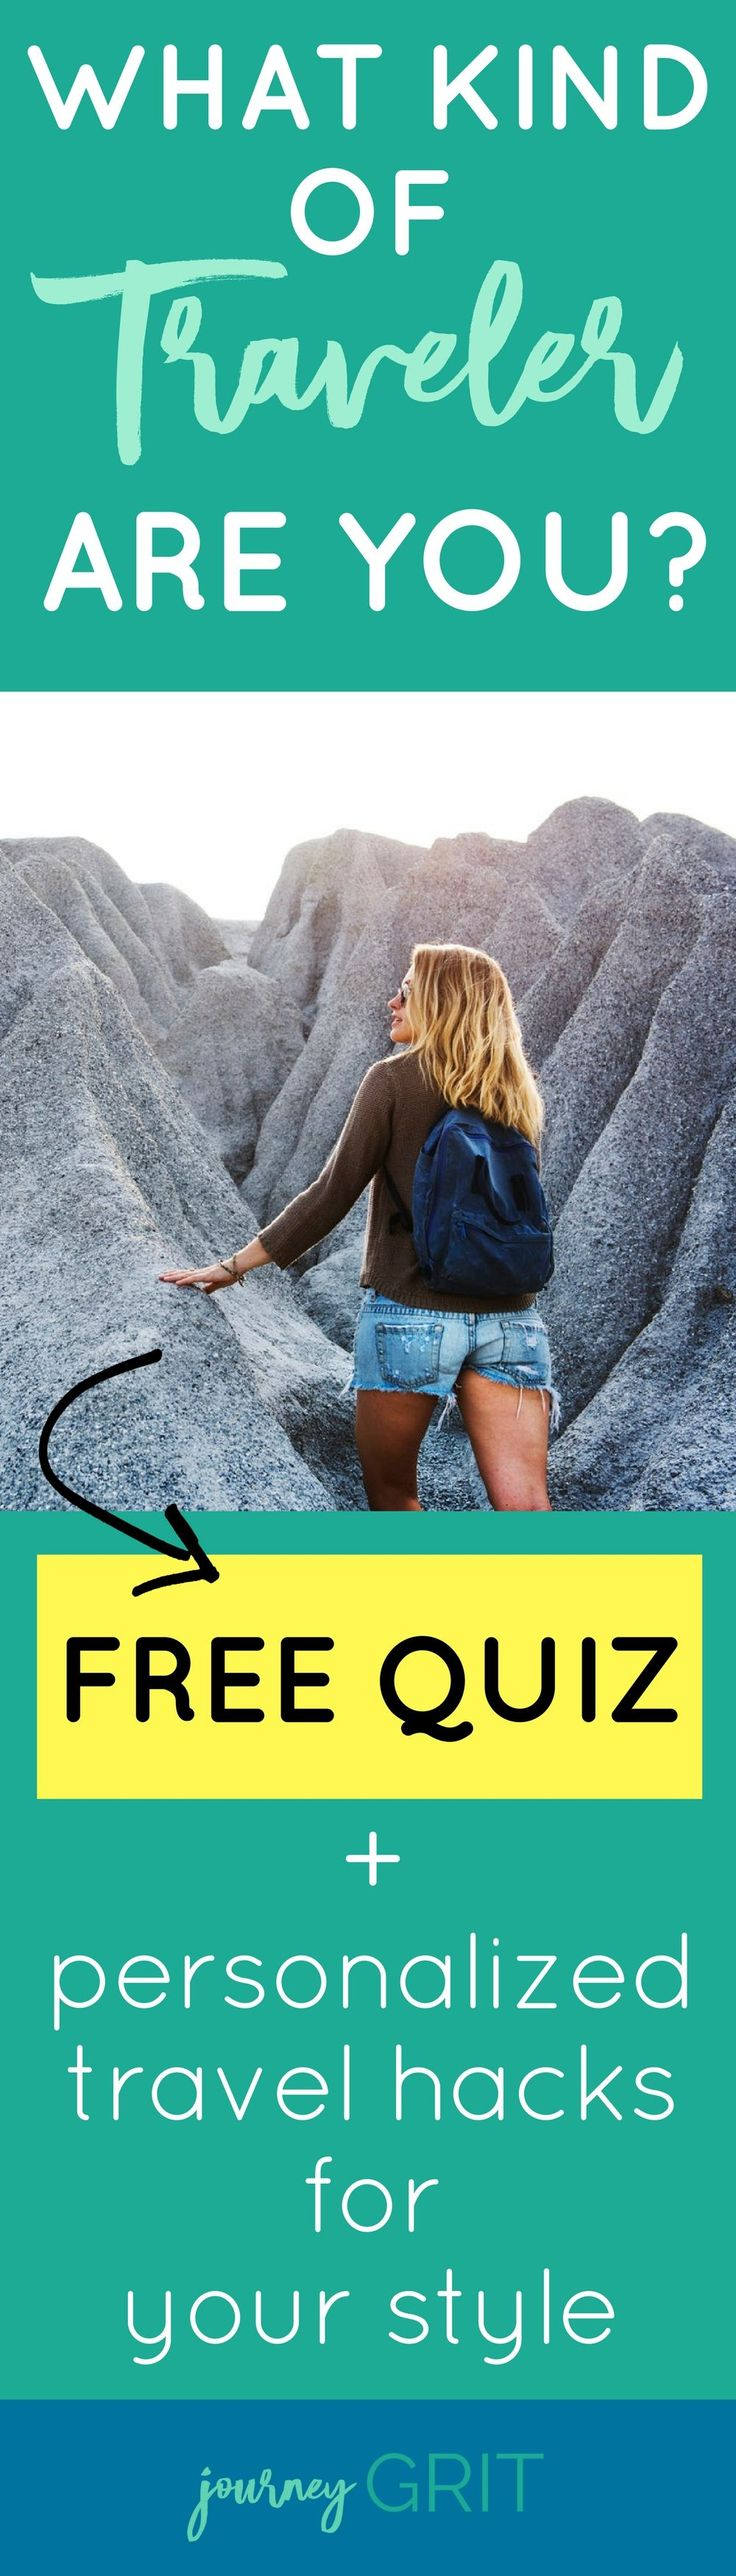 So what kind of traveler are you? Take this travel quiz to find out! *PLUS* You'll get personalized hacks tailored by me sent directly to your inbox based on your personal travel style. #travel #traveltips #travelhacks #travelquiz #journeygrit / travel planning / travel ideas / destination ideas / travel quiz / quiz